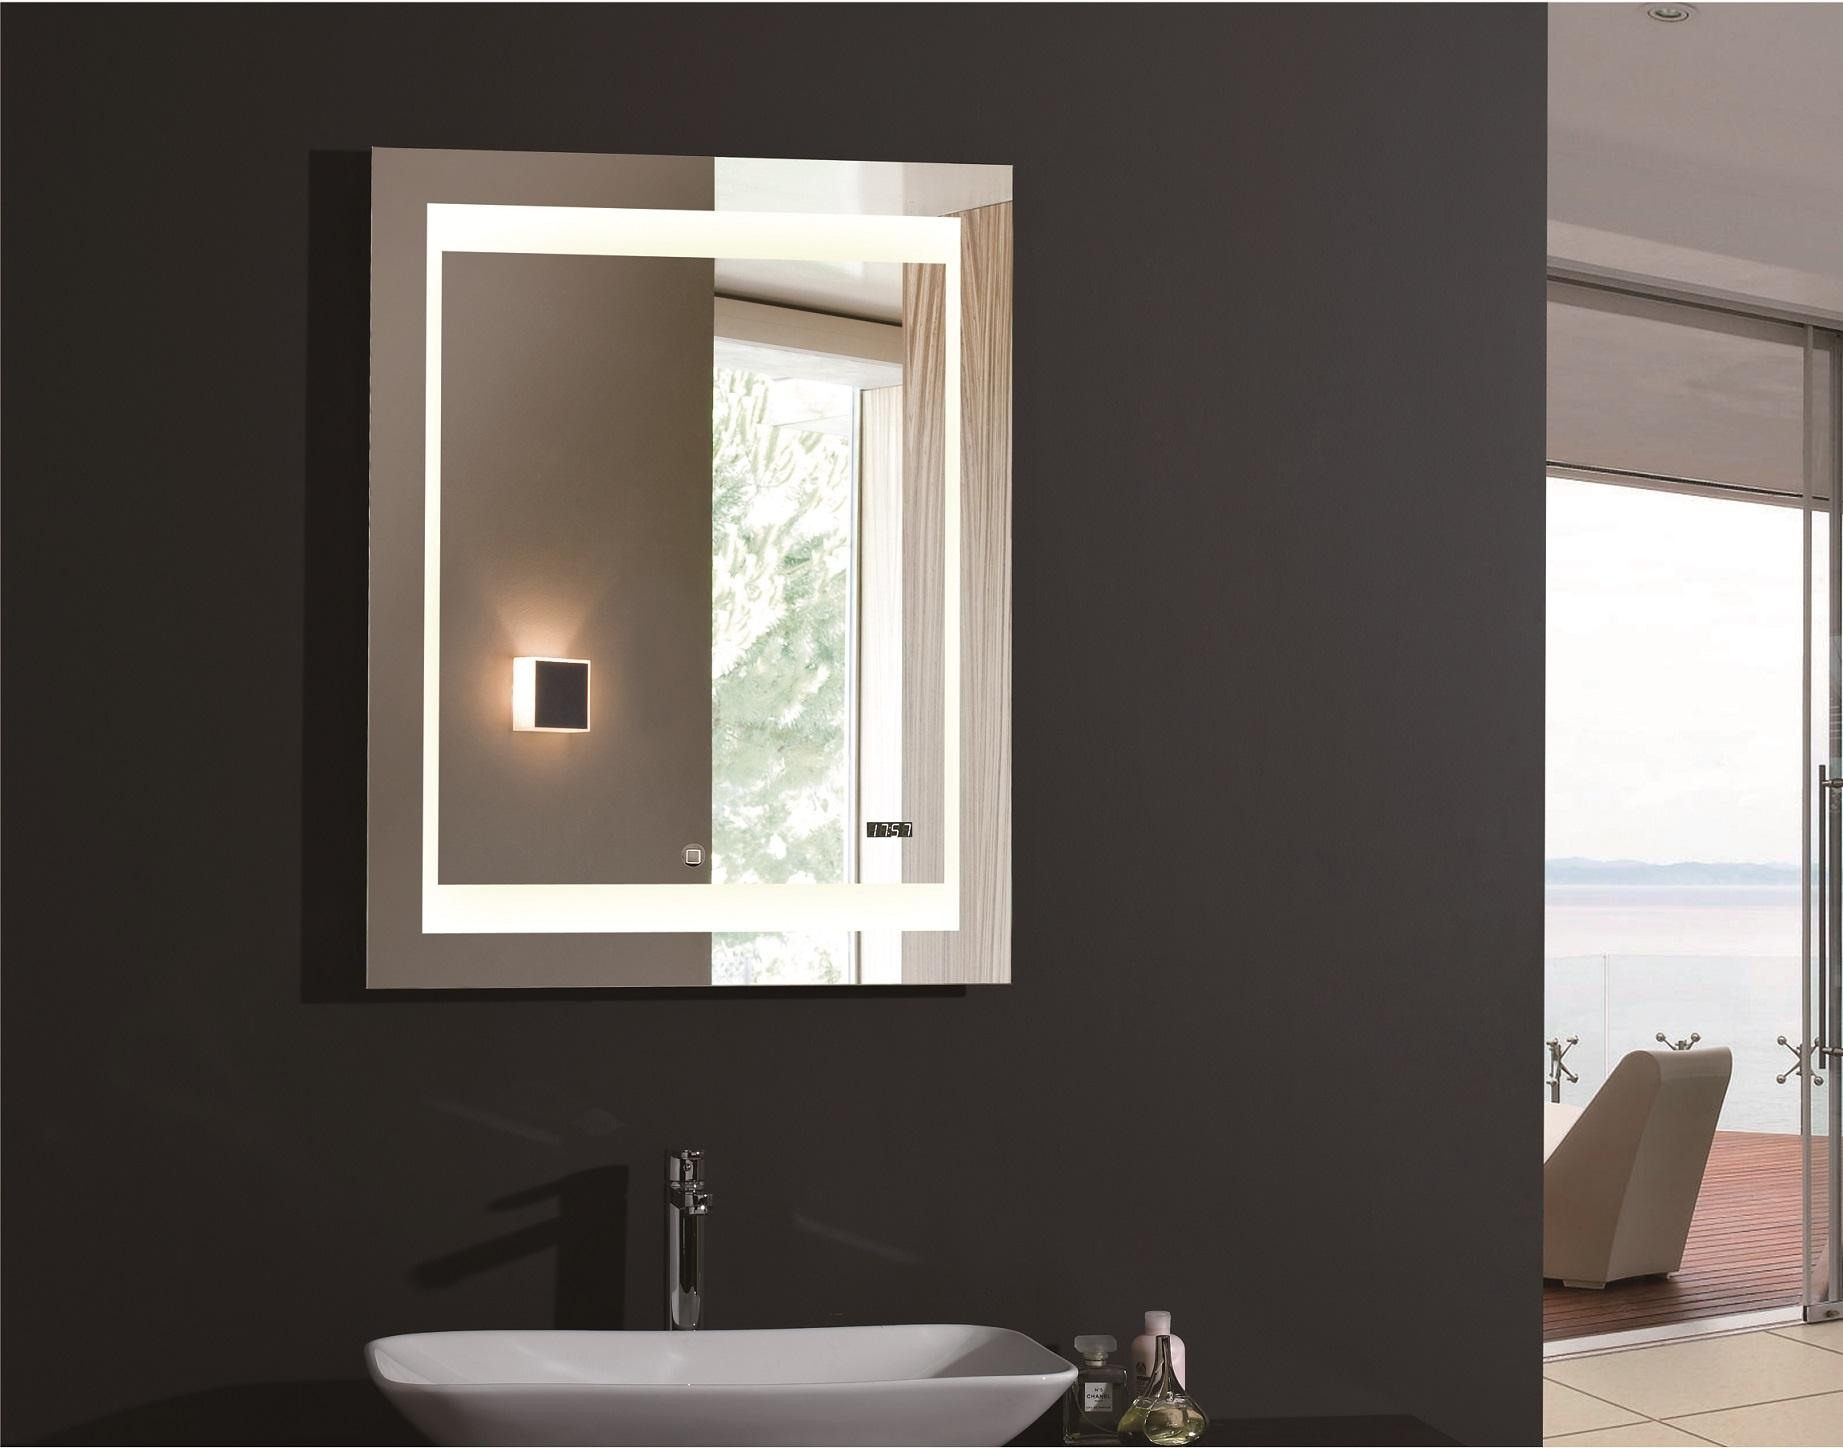 Bathroom : Cool Extra Wide Bathroom Mirrors Home Design Wonderfull Pertaining To Extra Wide Bathroom Mirrors (Image 3 of 20)